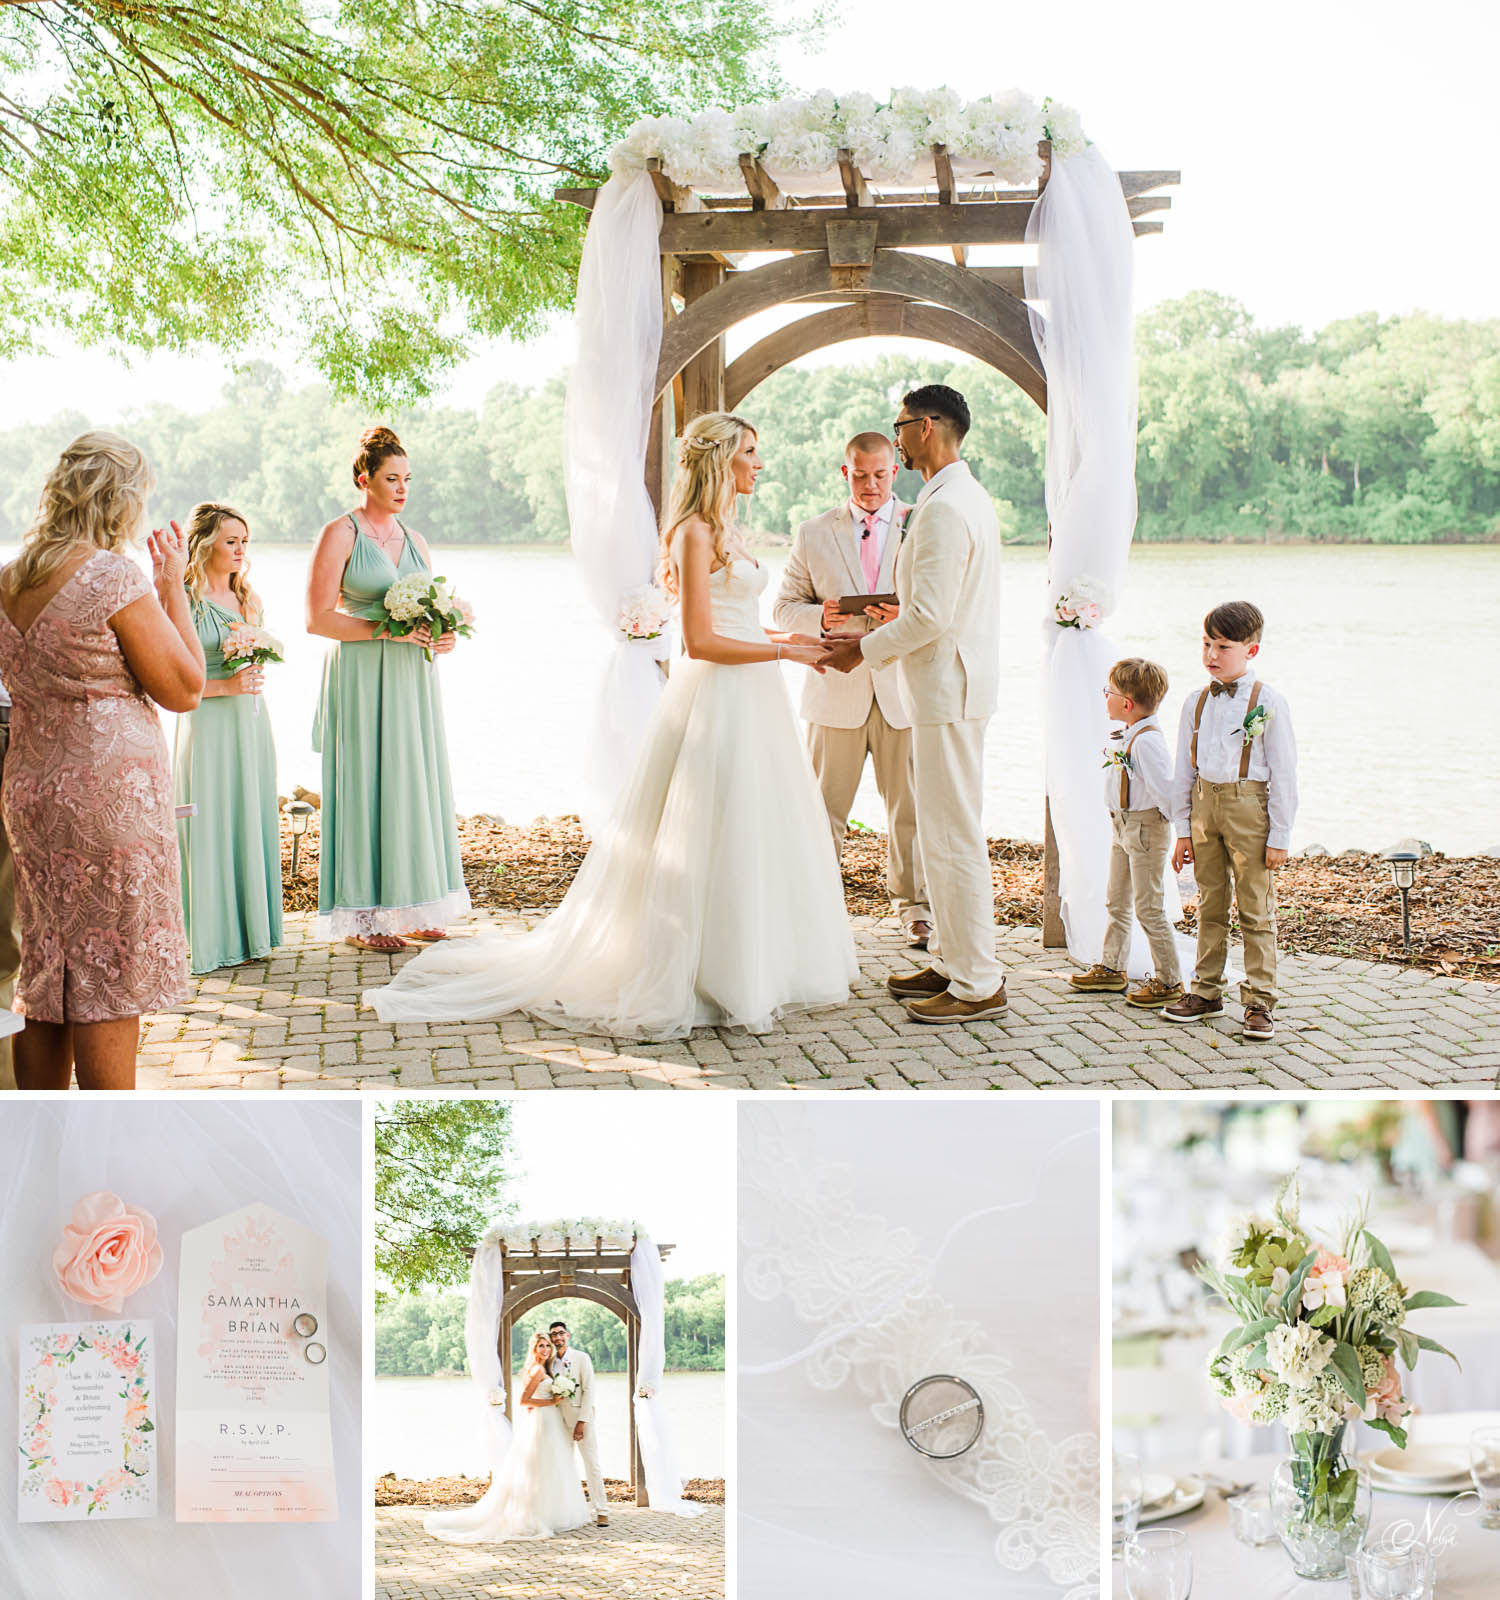 Intimate Tennessee River Wedding | Samantha + Brian